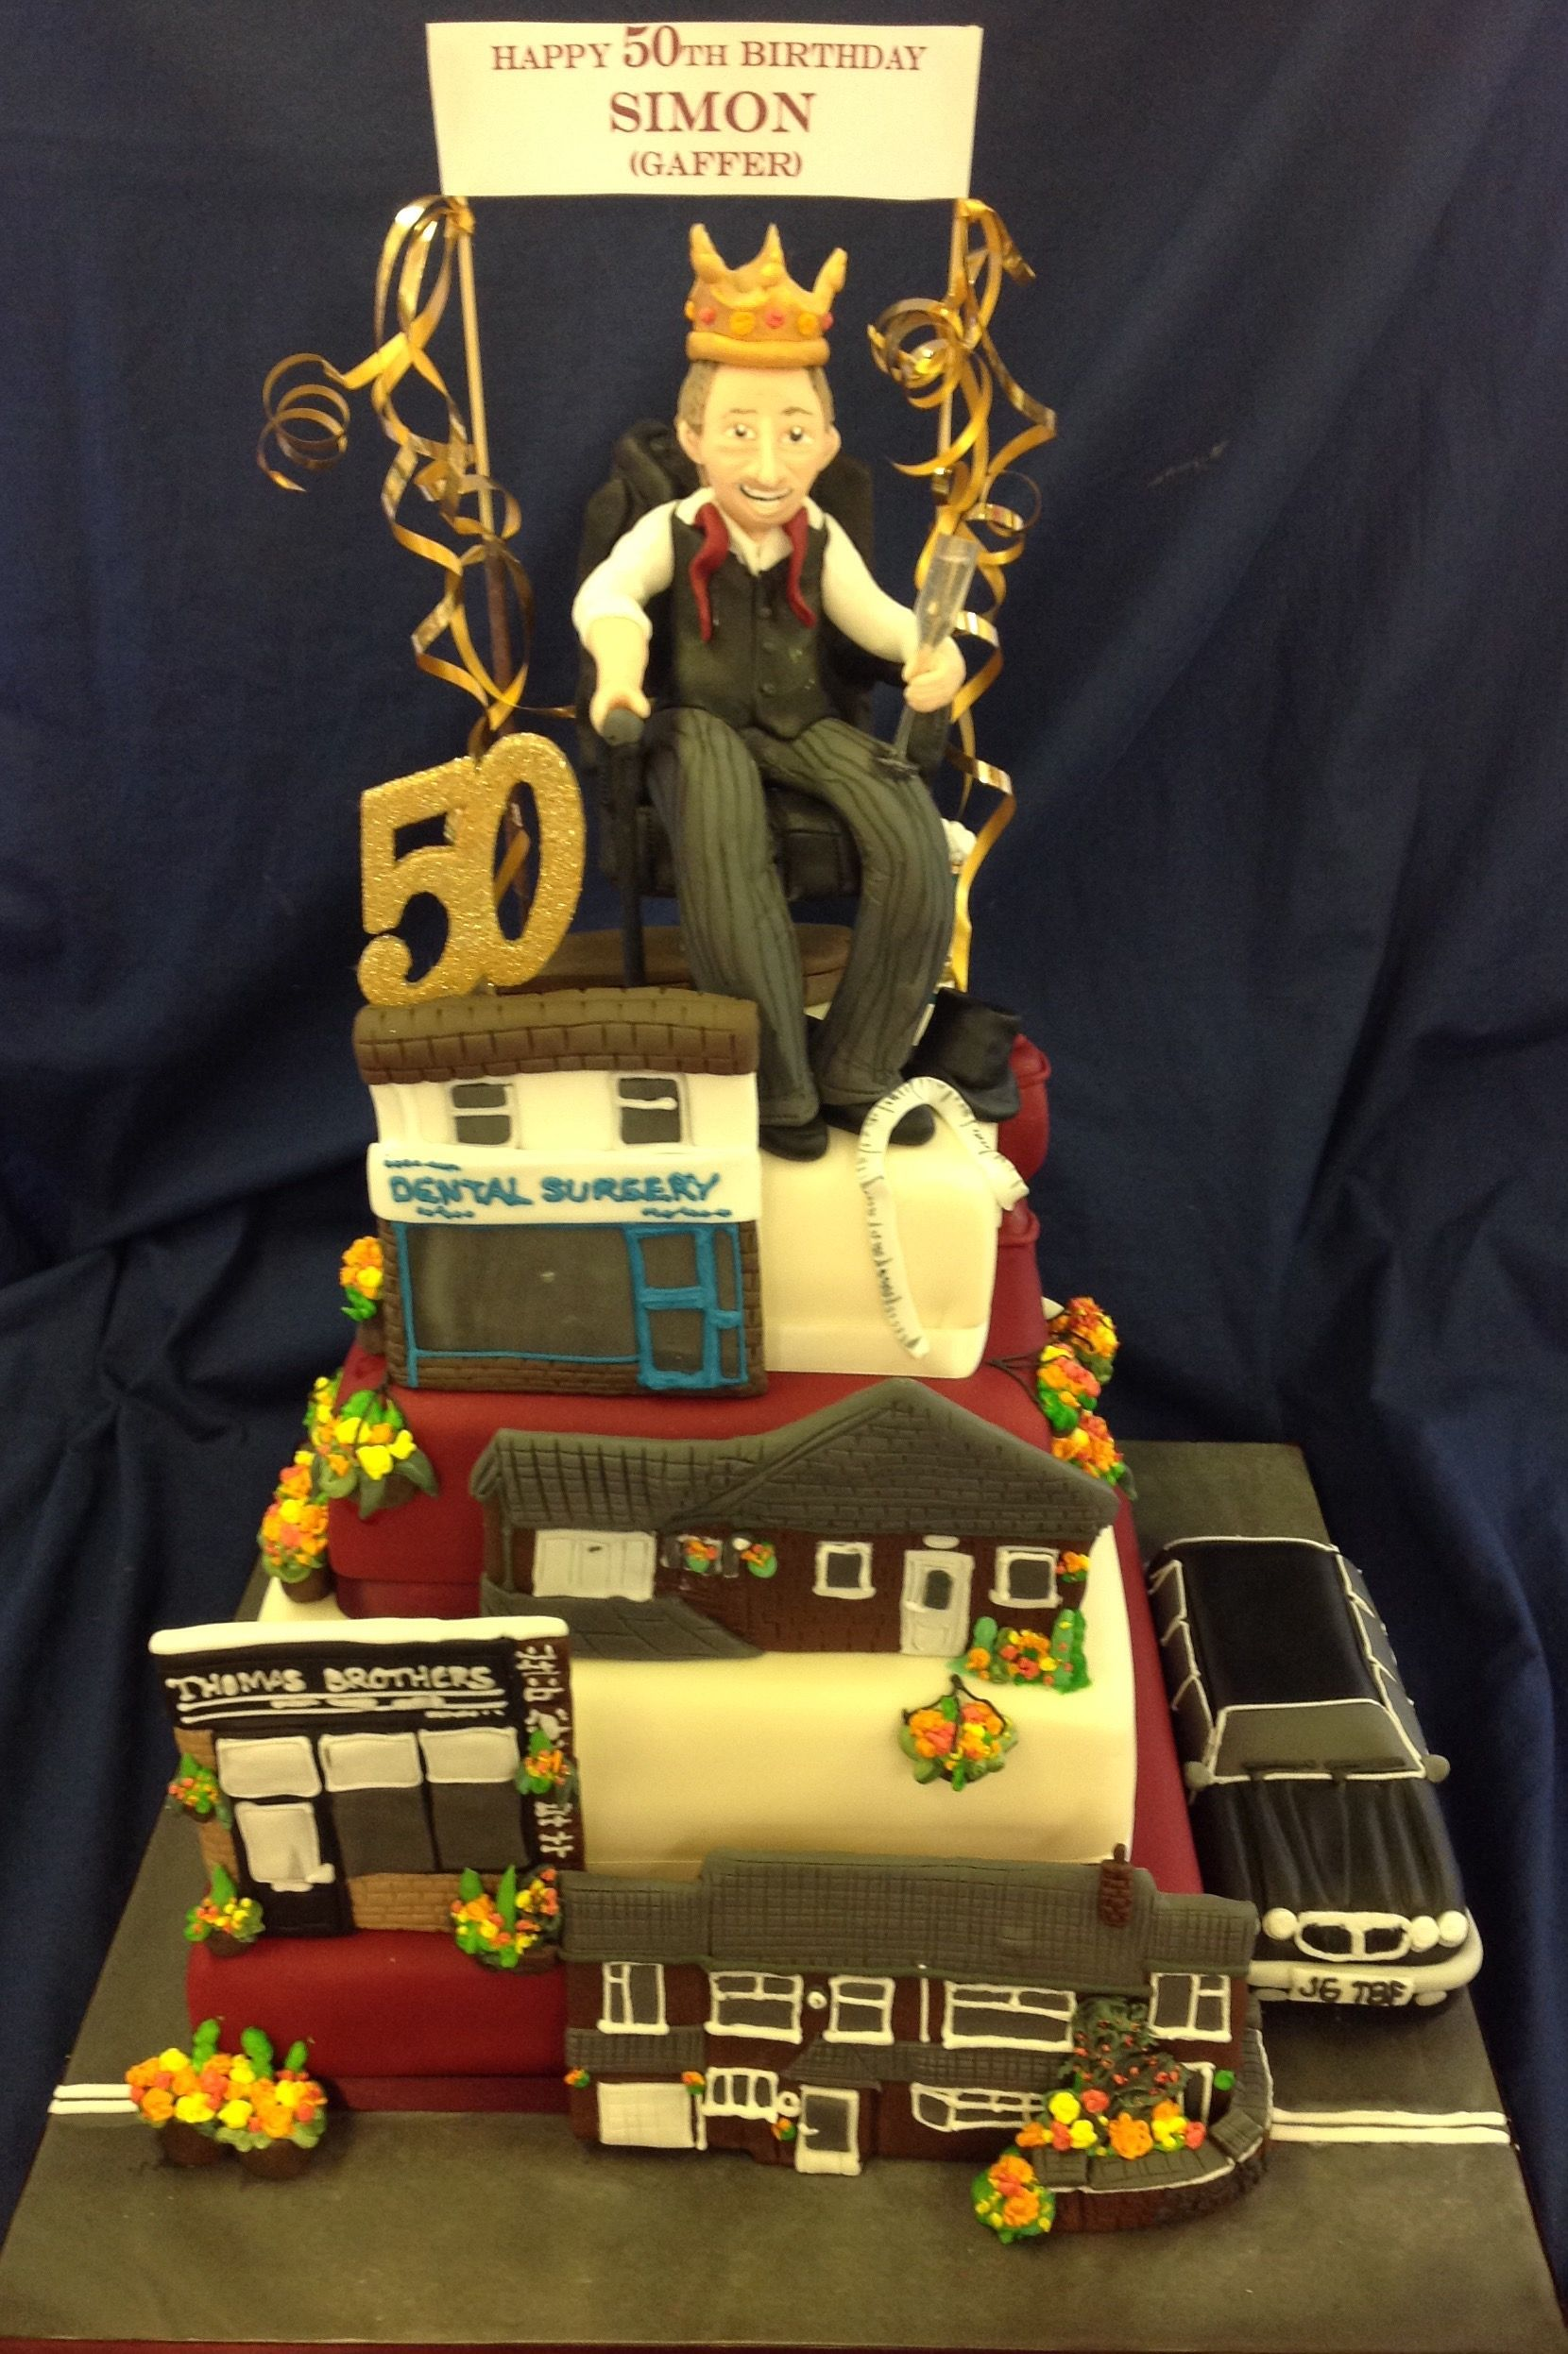 Funeral Directors Birthday Cake Just A Few Of Our Cakes